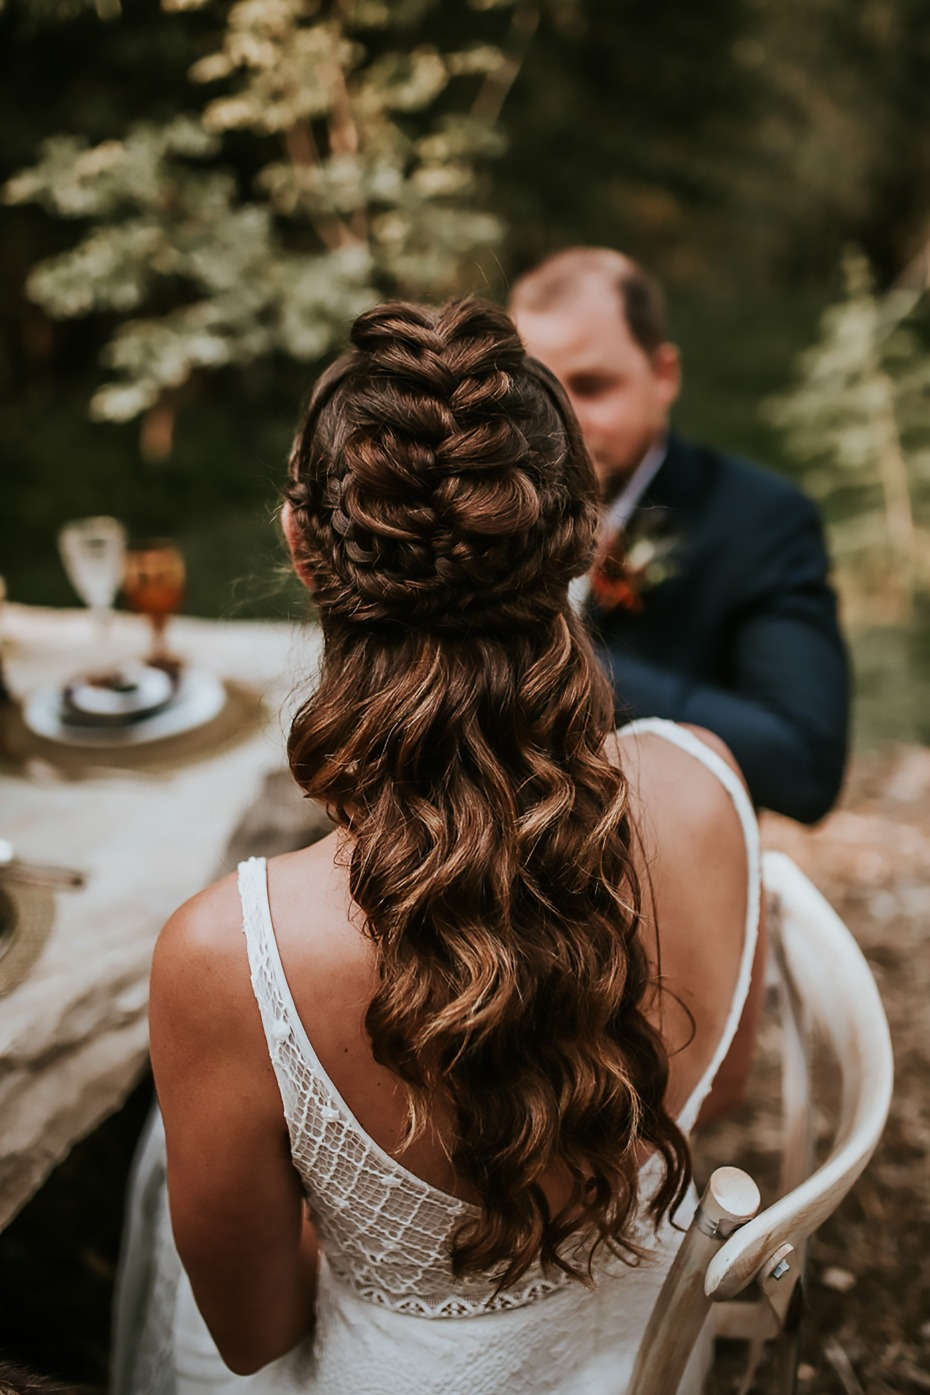 dramatic Game of Thrones styled wedding hair